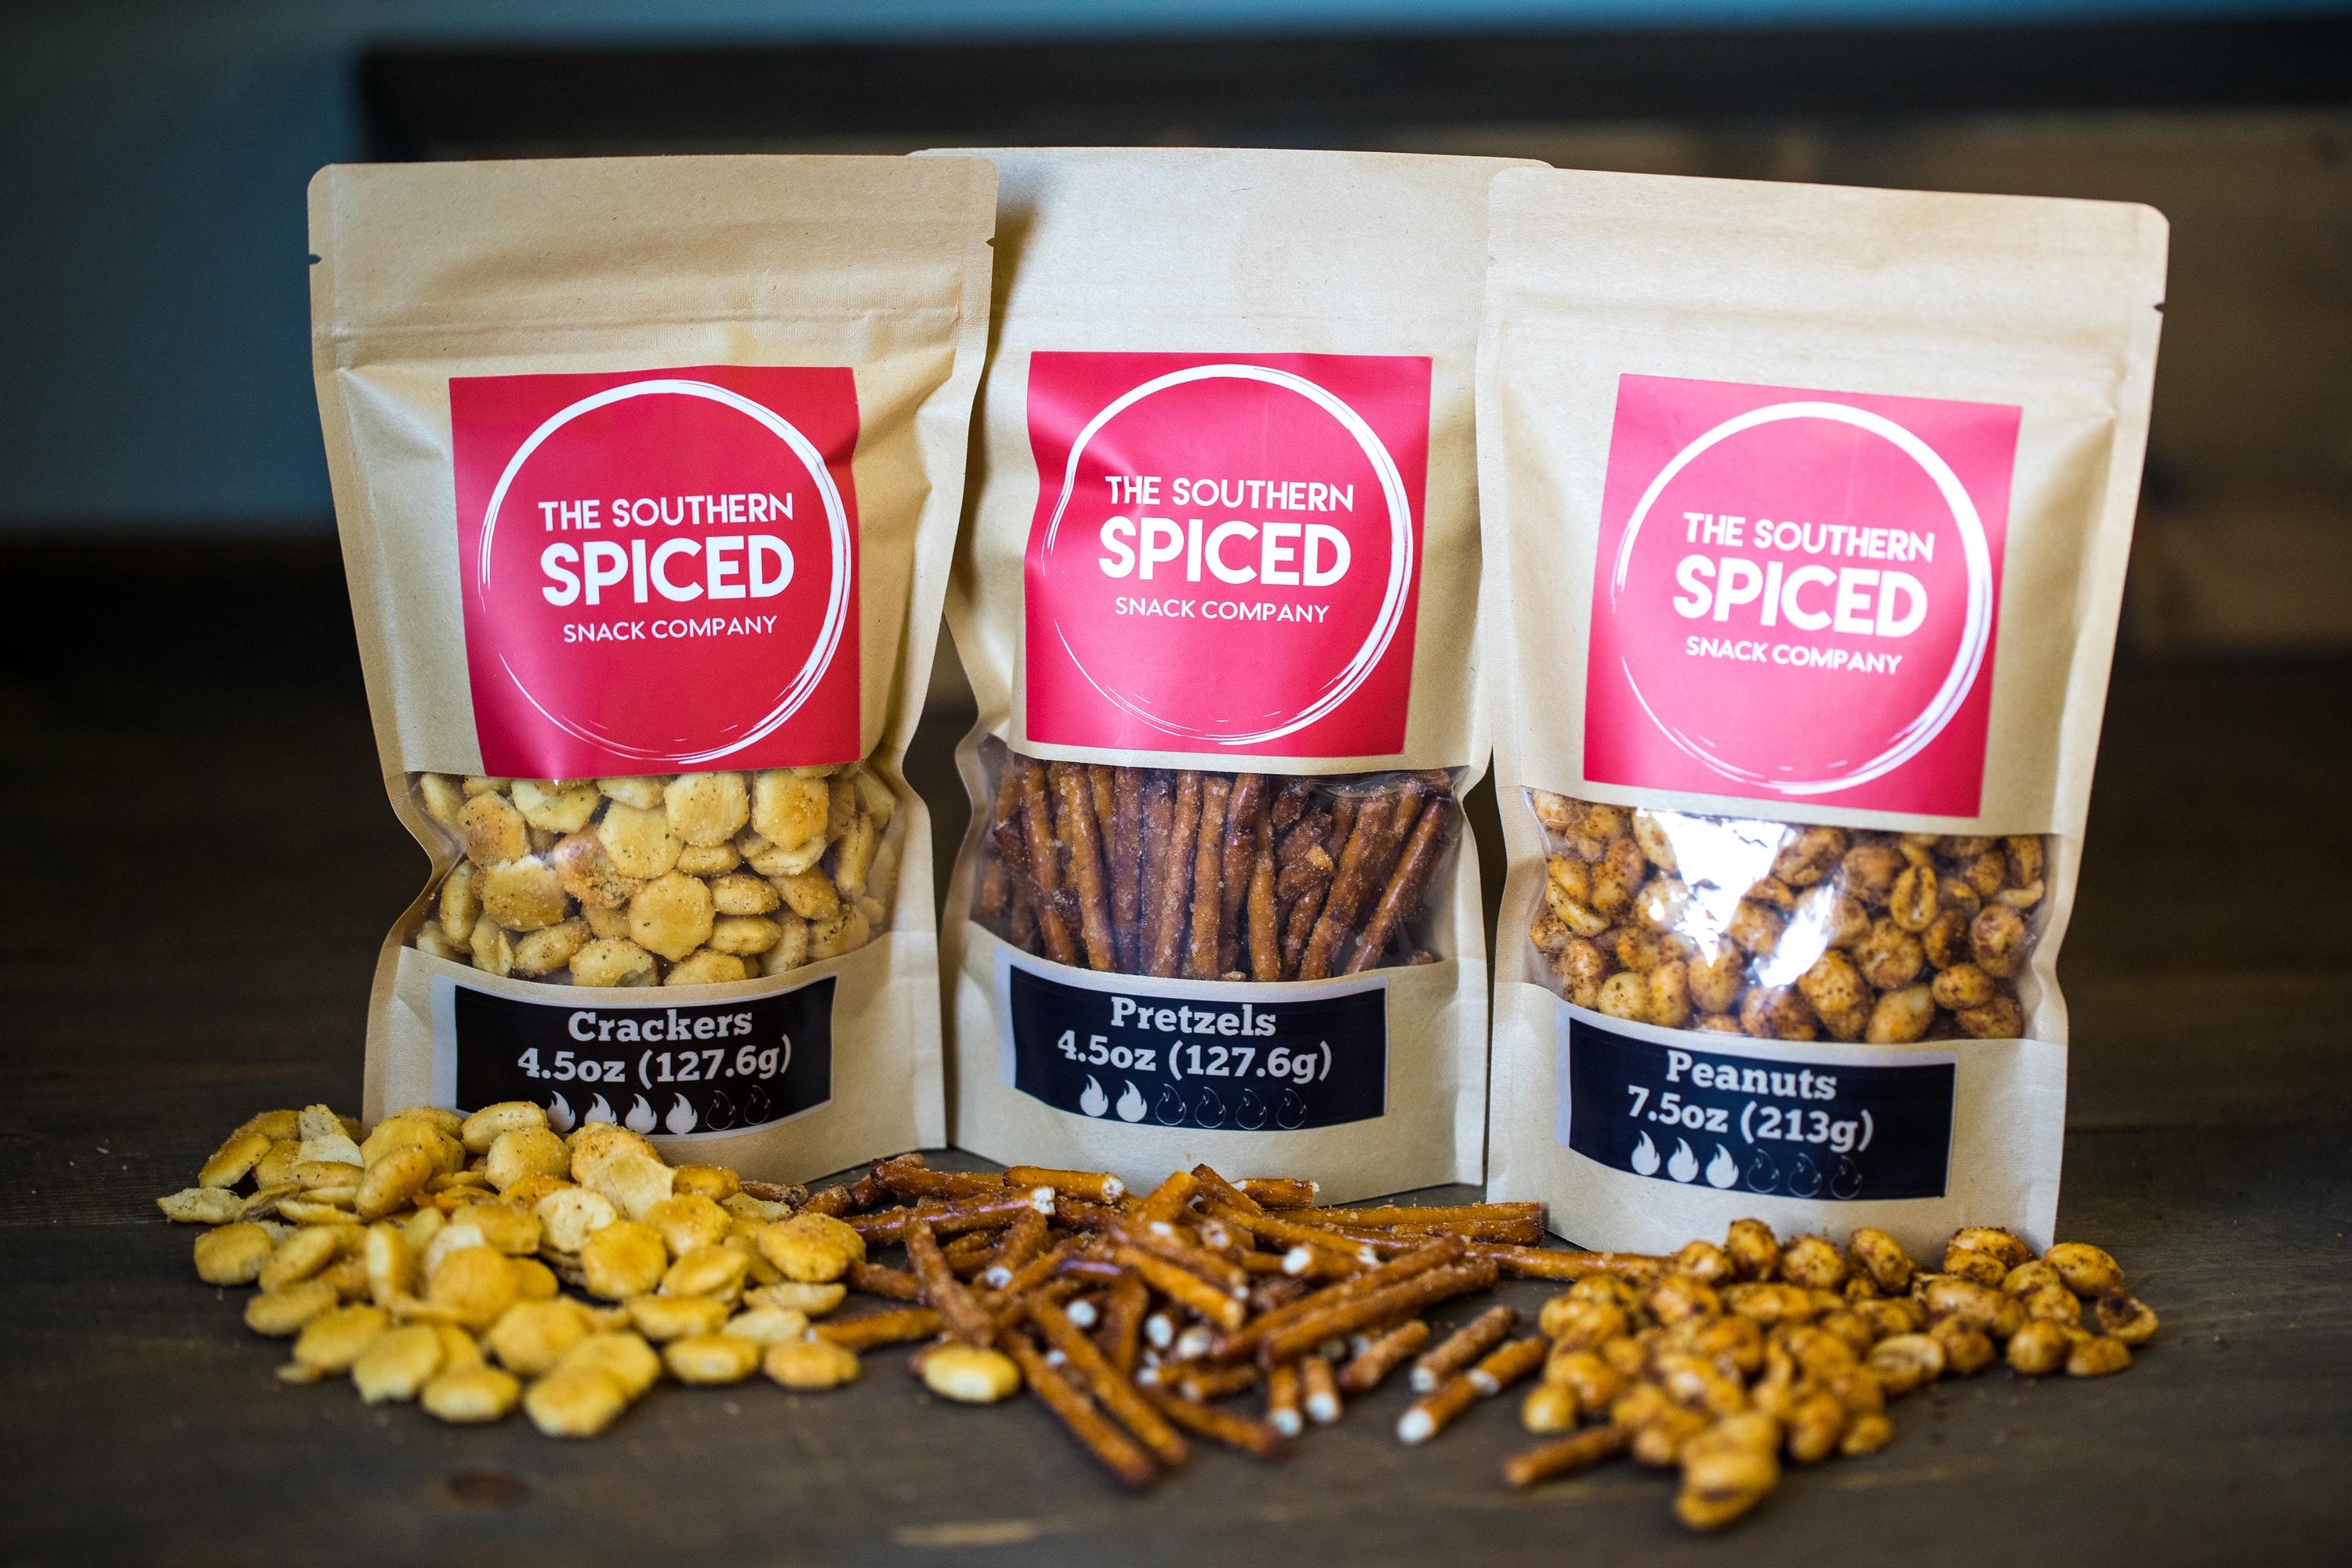 The Southern Spiced Snack Company